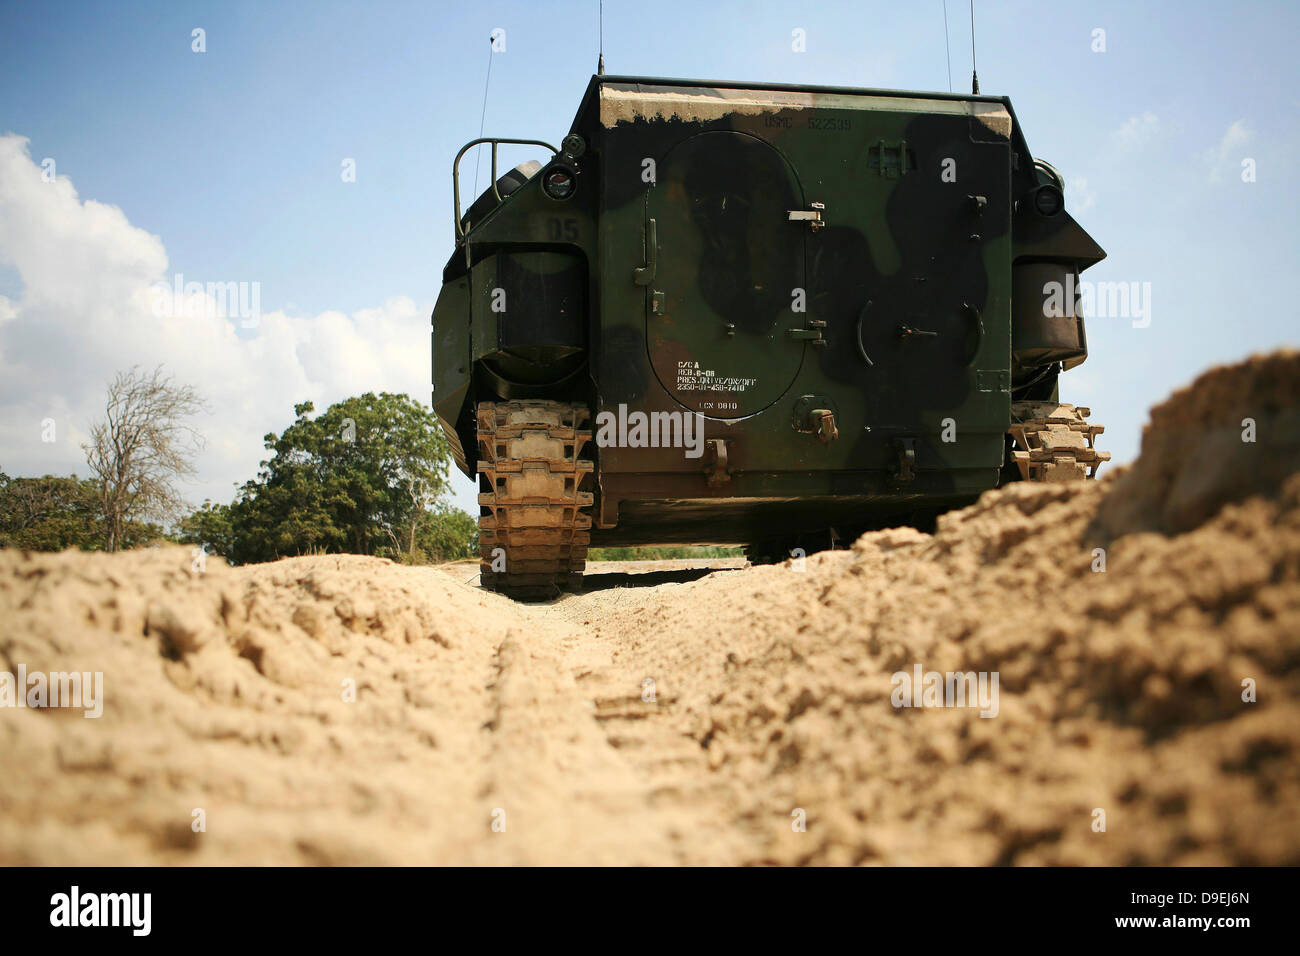 Low angle rear view of an amphibious assault vehicle driving along the beach. - Stock Image